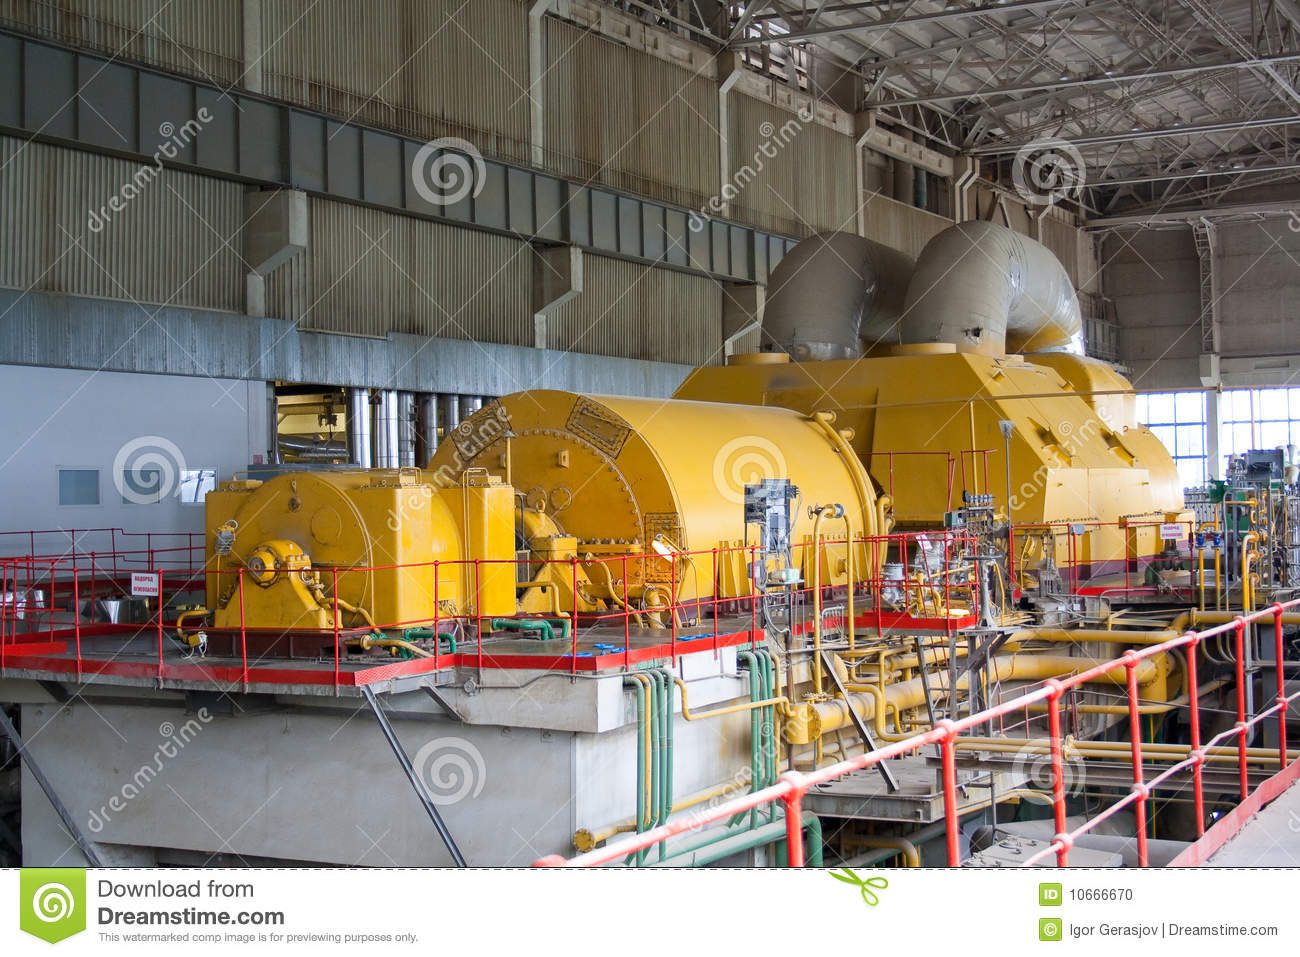 The Peltier Thermo Element furthermore Case Study Iso Dc Dc likewise Stock Photo Steam Turbine Generator Side Image10666670 moreover Difference Between Slip Ring And Squirrel Cage Induction Motor further POW   Biome Map. on power generator diagram